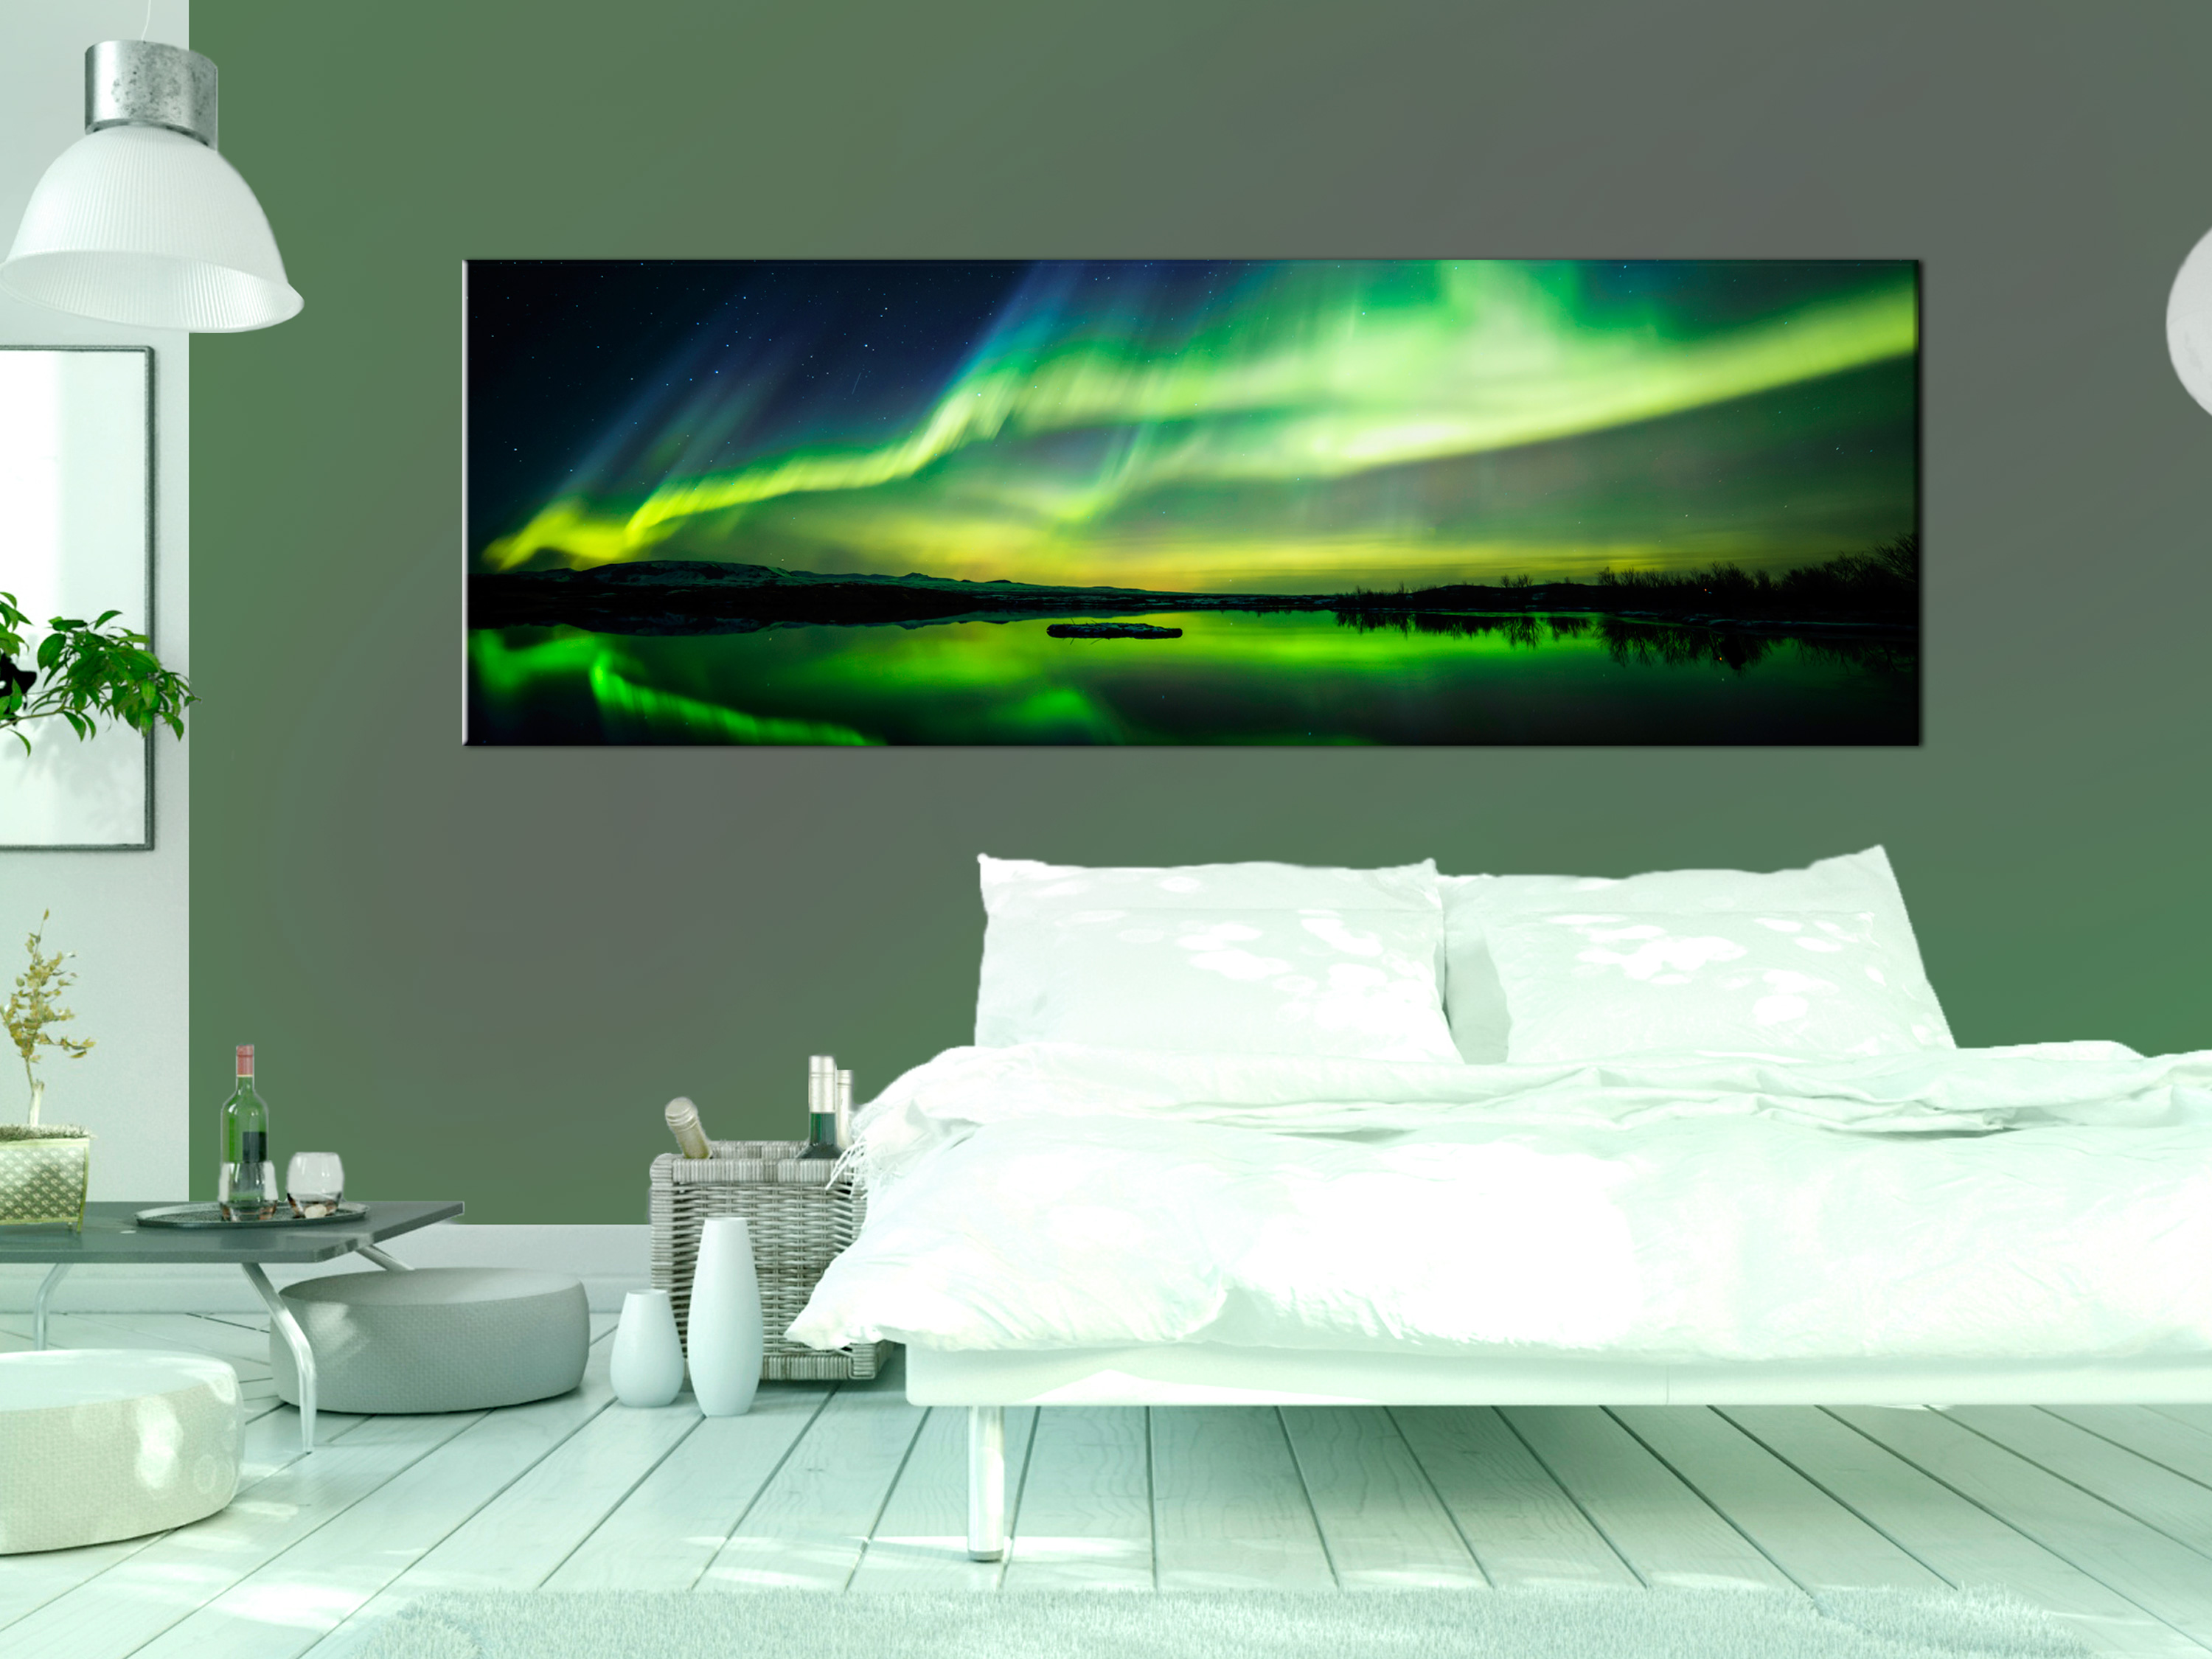 wandbilder xxl wohnzimmer leinwand bilder xxl polarlicht nordlicht c b 0289 b b ebay. Black Bedroom Furniture Sets. Home Design Ideas